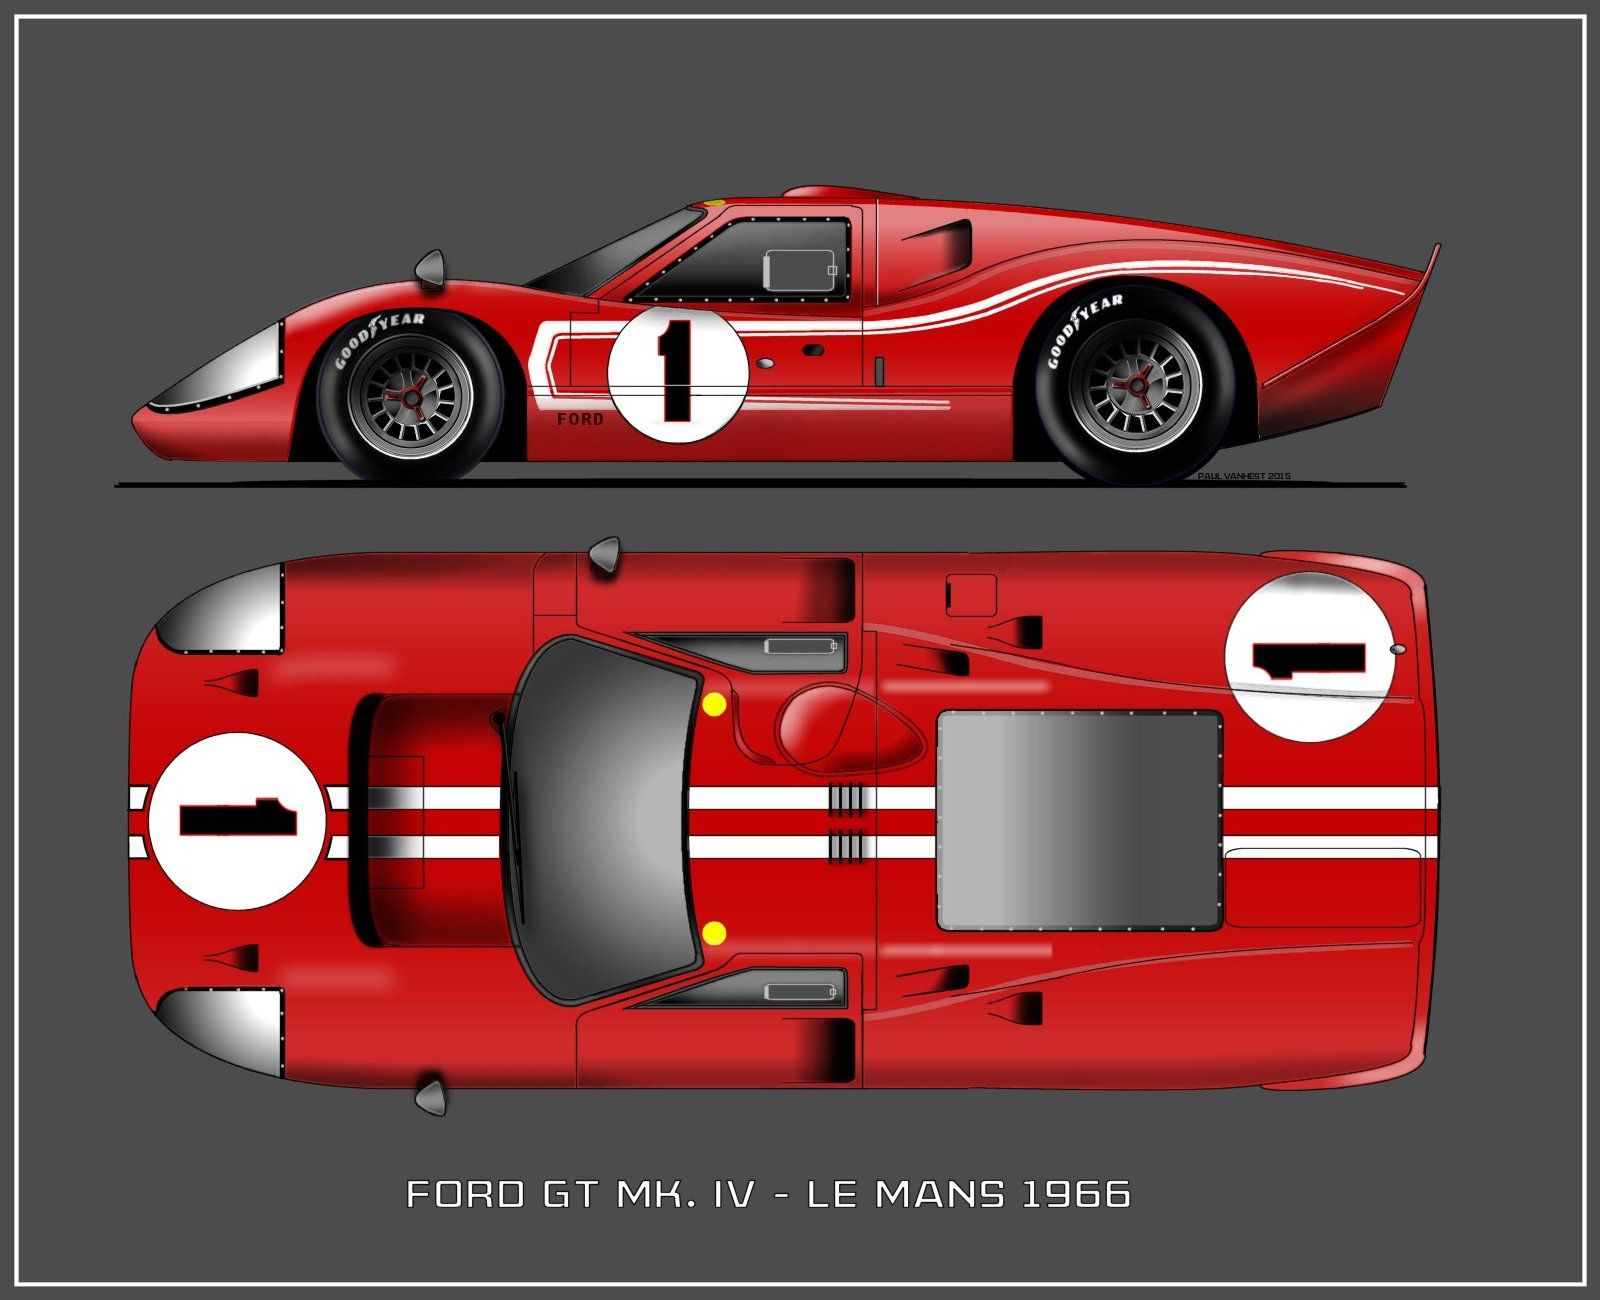 Ford Gt Mk 4 1966 Ford Gt Ford Motorsport Ford Racing